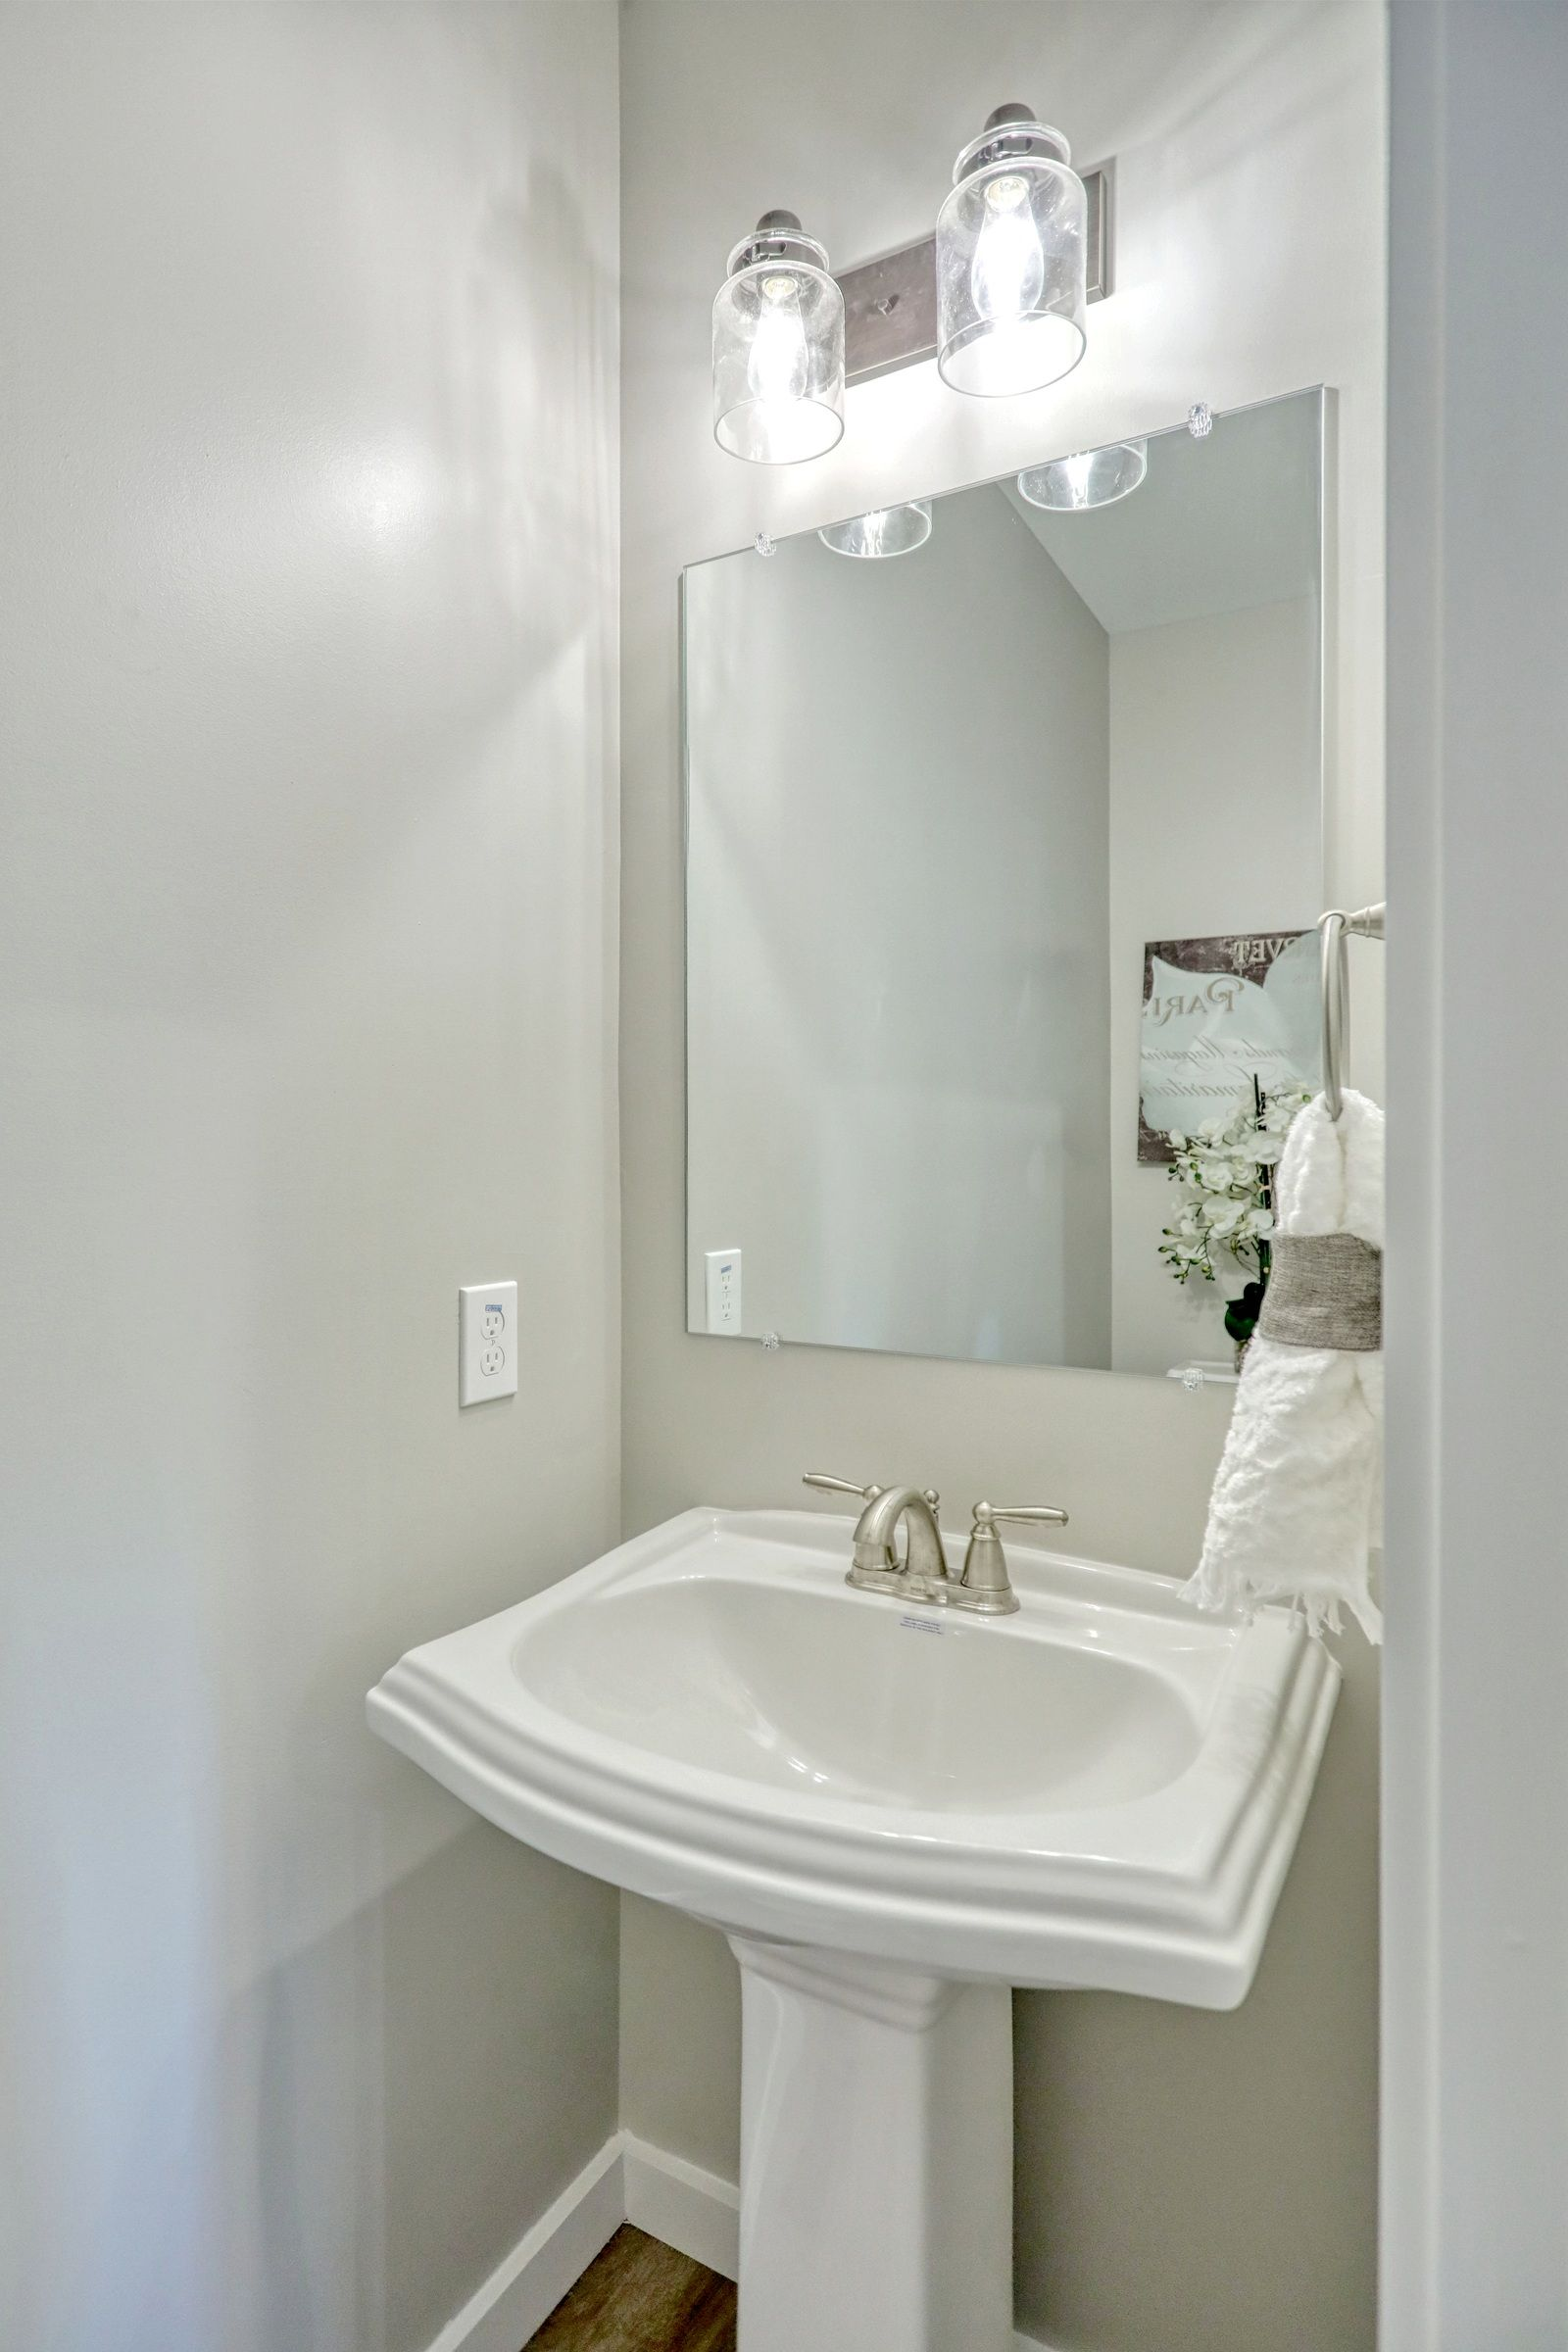 Bathroom featured in the Addison Traditional By Keystone Custom Homes in York, PA